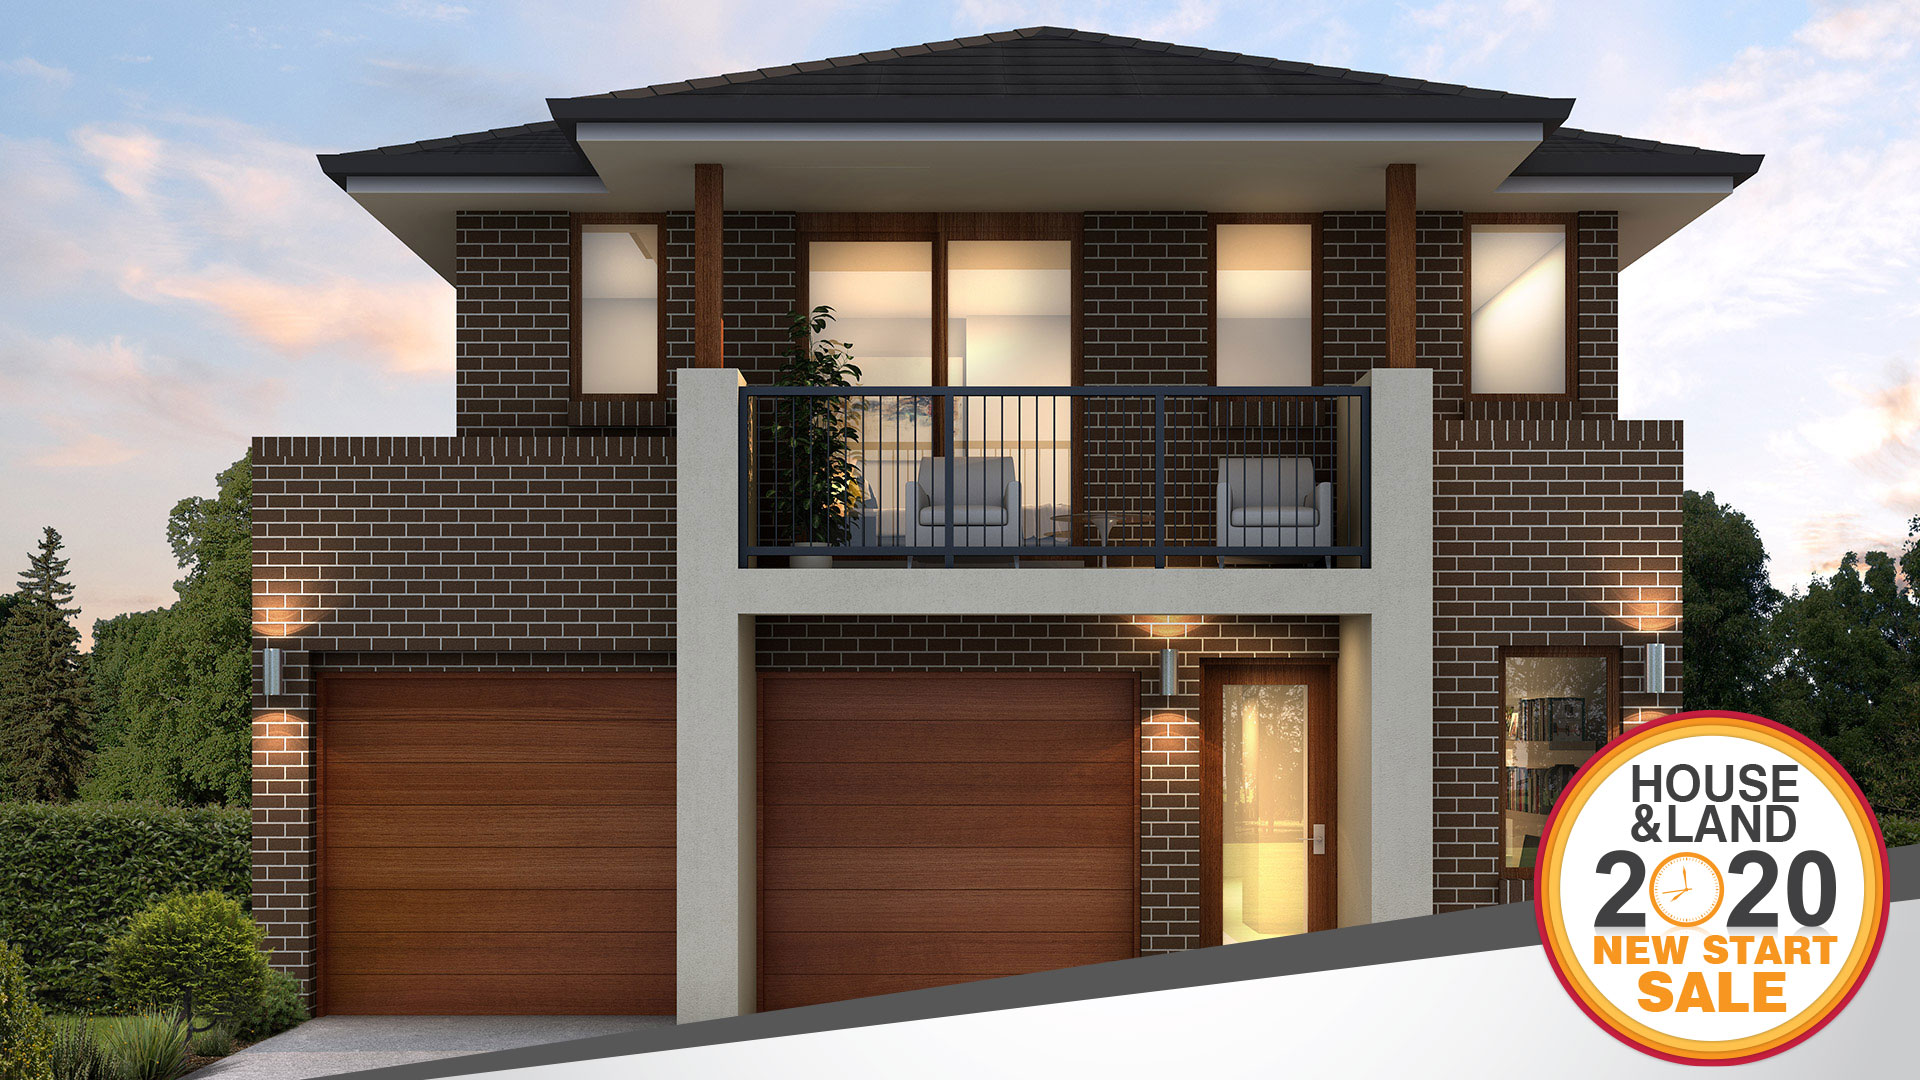 400 House Land New Start Sale WebsiteImages OranPark9667